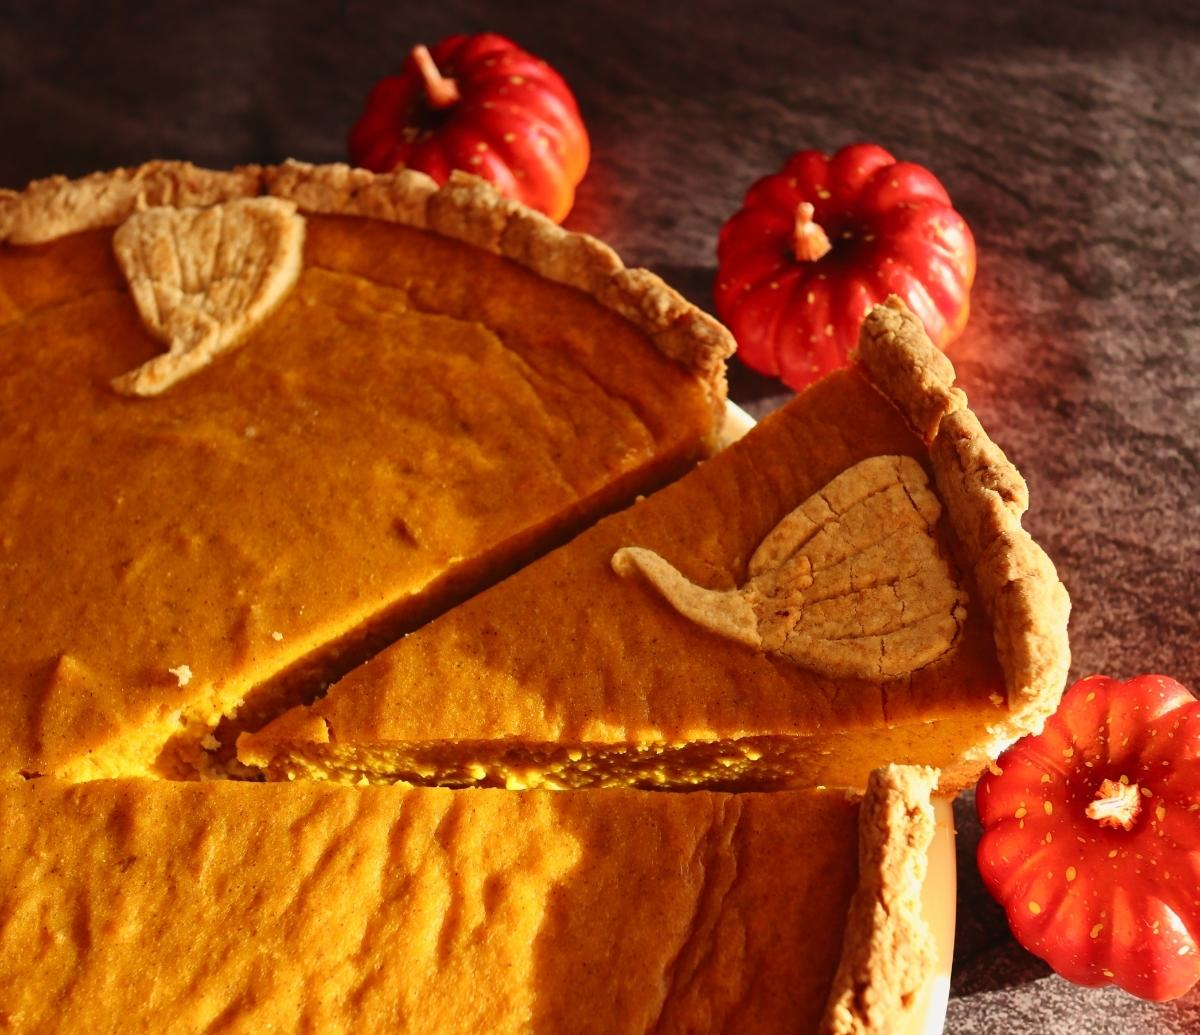 For your coronavirus stress baking, head to a pumpkin patch in or near Ellington or Somers and make a perfect from-scratch pumpkin pie.